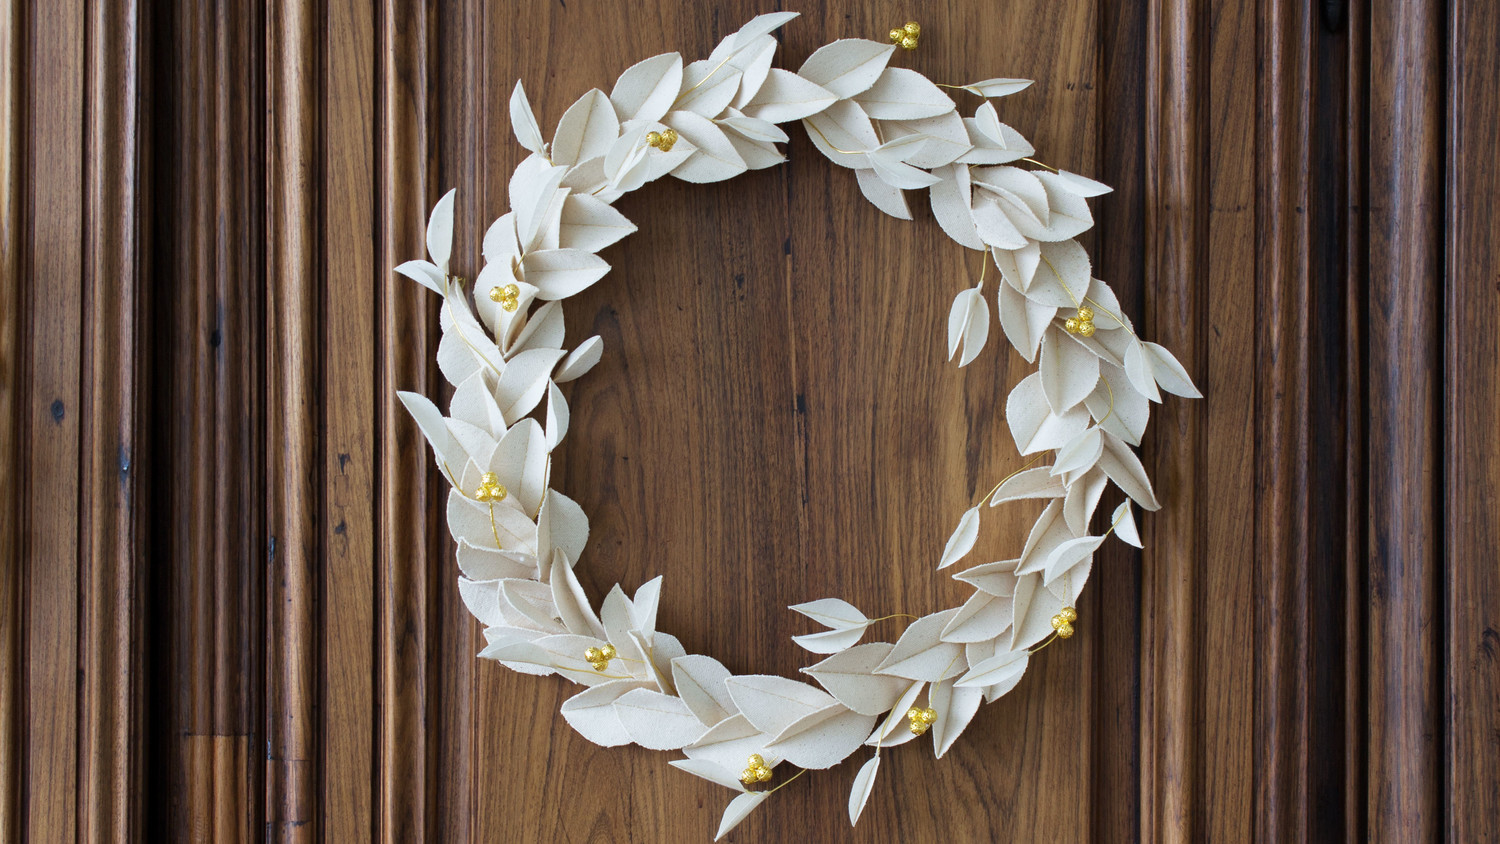 Fabric-Leaf Wreath with Gold Berries